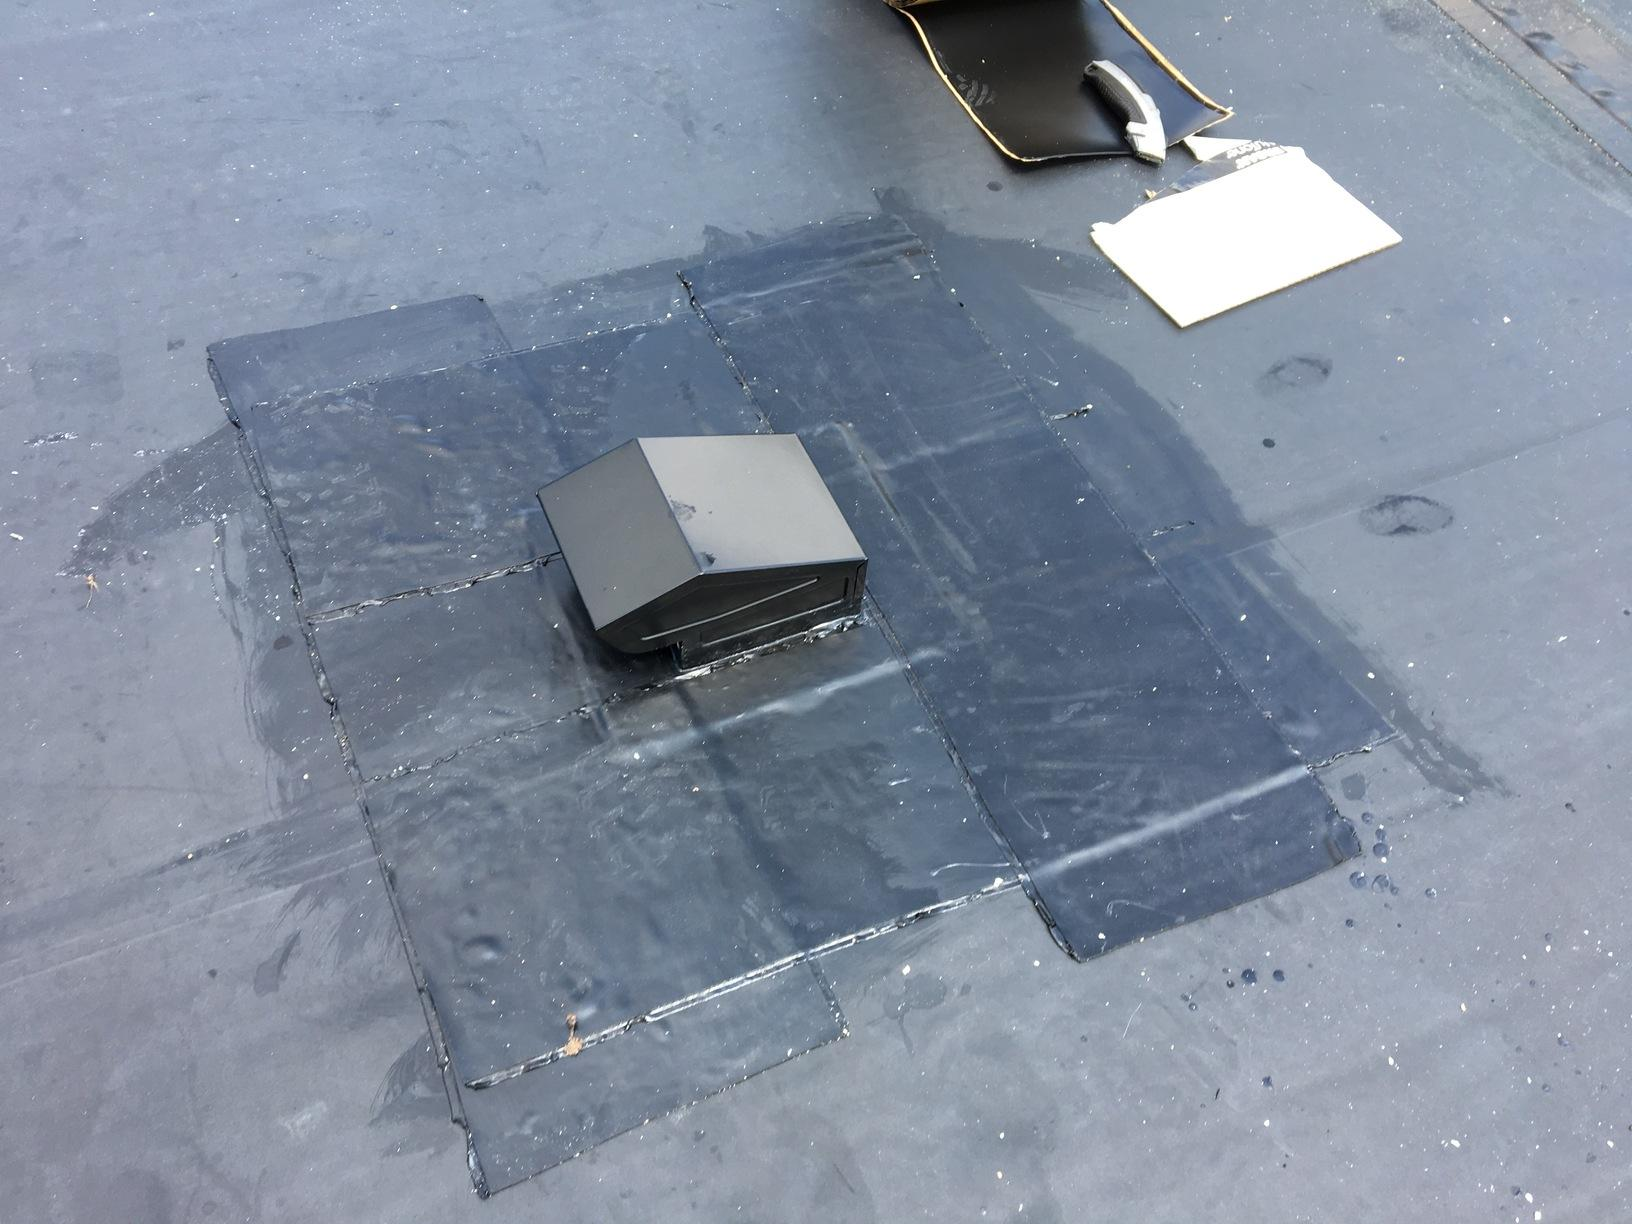 Commercial Roofing Epdm Rubber Roofing Bathroom Fan Vent